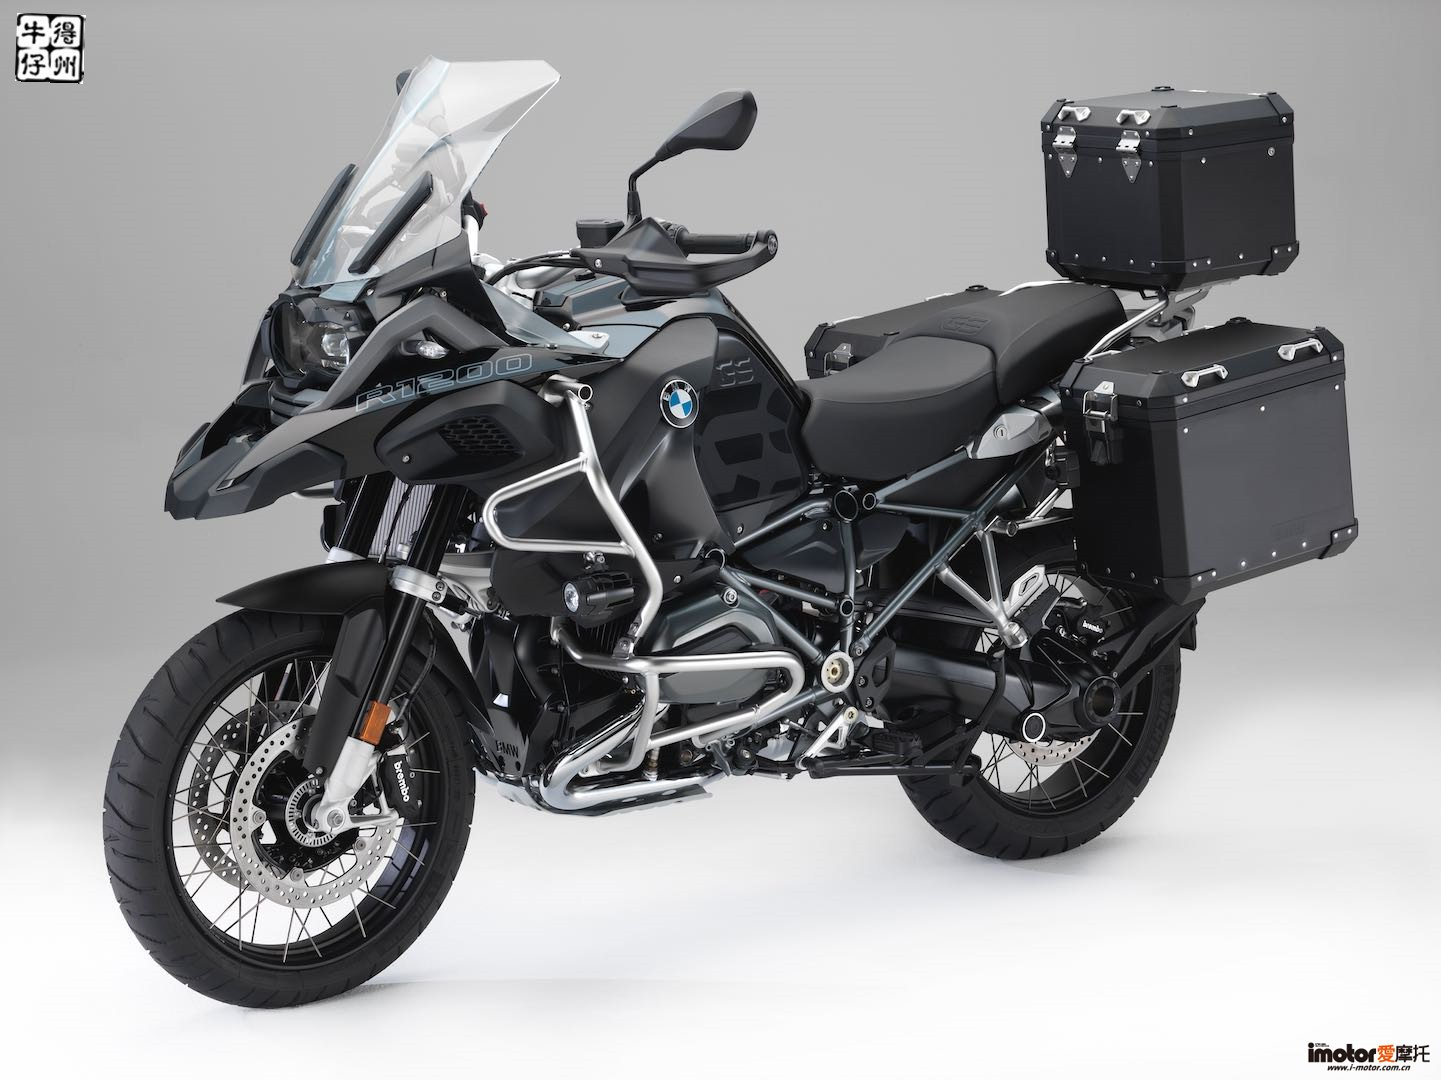 2018-bmw-r-1200-gs-adventure-black-edition-parts-2.jpg